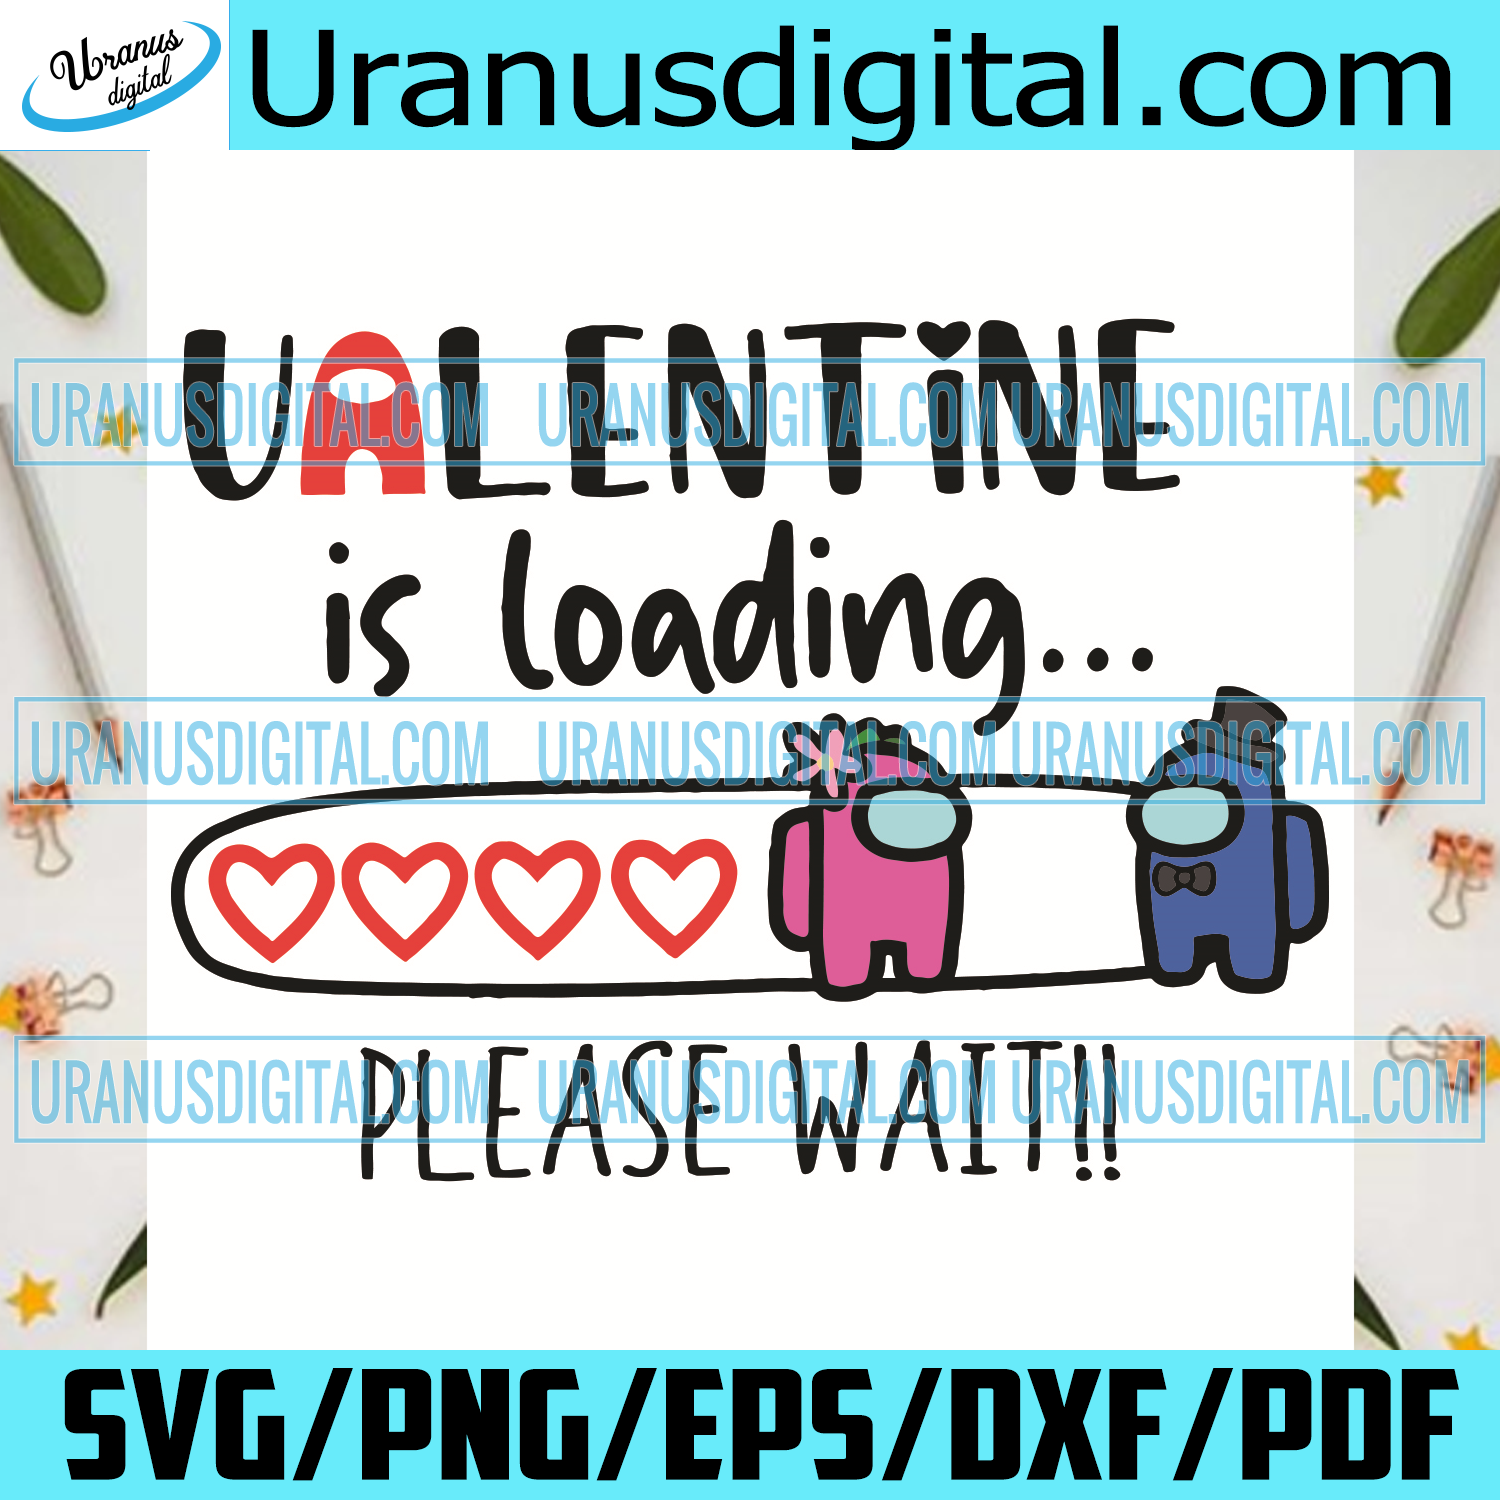 Among Us Valentine Is Loading Please Wait Svg, Valentine Svg, Among Us Svg, Among Us Love Svg, Impostors Svg, Impostors Love Svg, Impostors Couple Svg, Love Svg, Love Gifts Svg, Valentine Gift Svg, Valentine Day Svg,